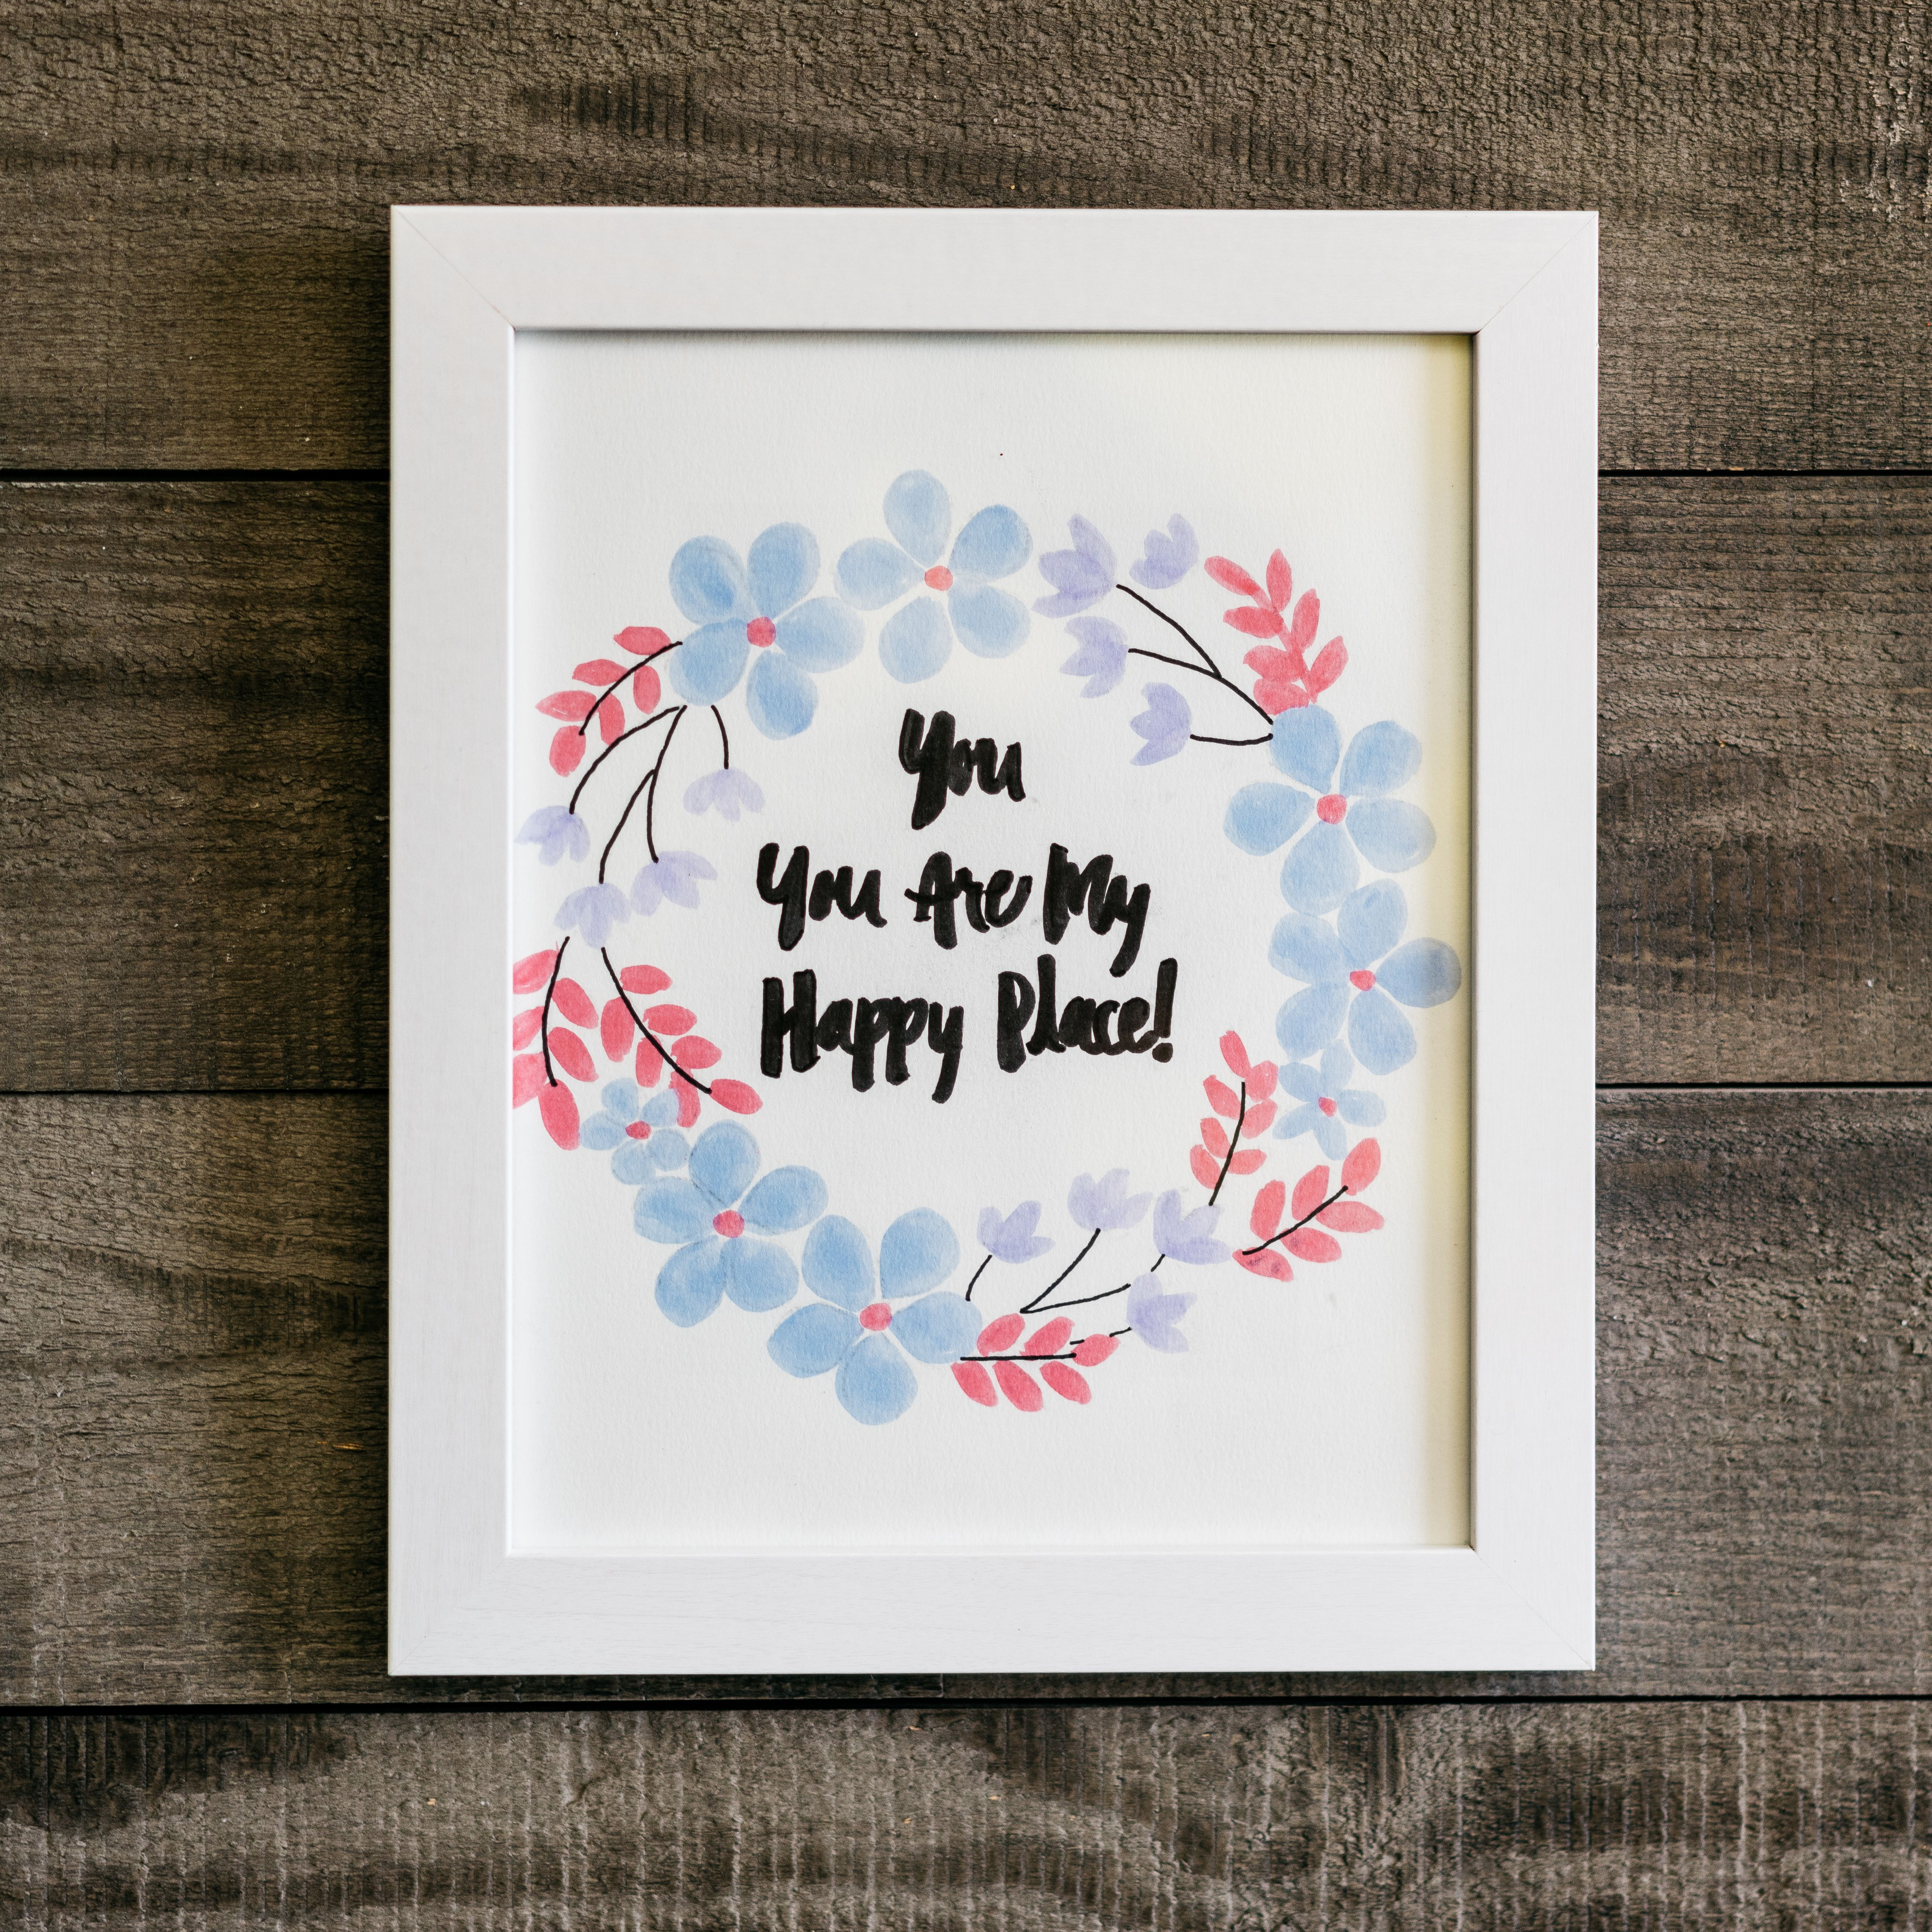 Diy framed floral calligraphy darbysmart makeitwithmichaels diy framed floral calligraphy darbysmart makeitwithmichaels diyproject trace calligraphy quotes solutioingenieria Gallery